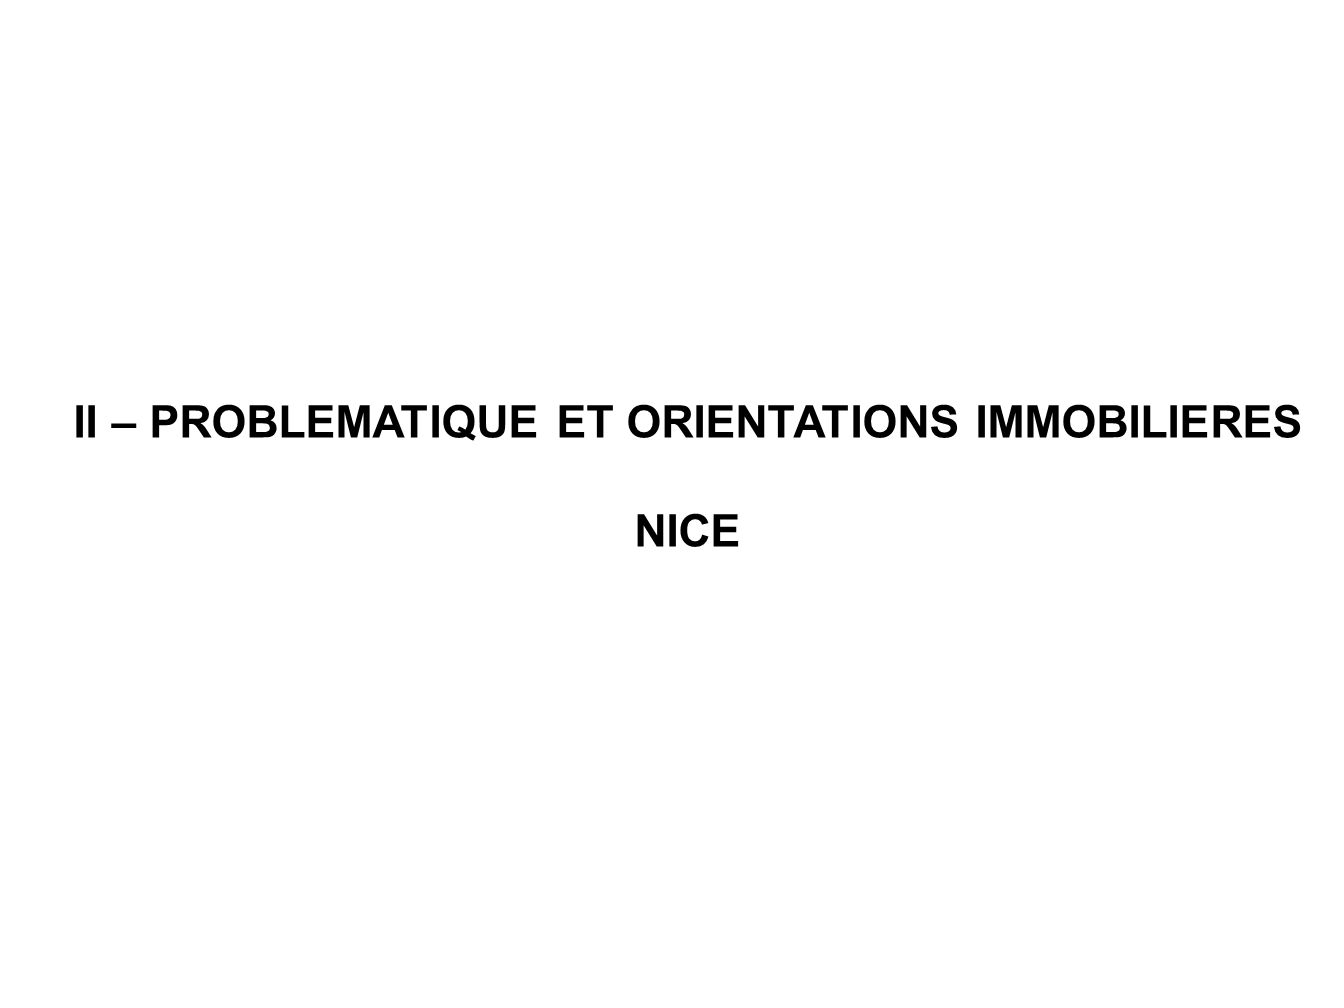 II – PROBLEMATIQUE ET ORIENTATIONS IMMOBILIERES NICE